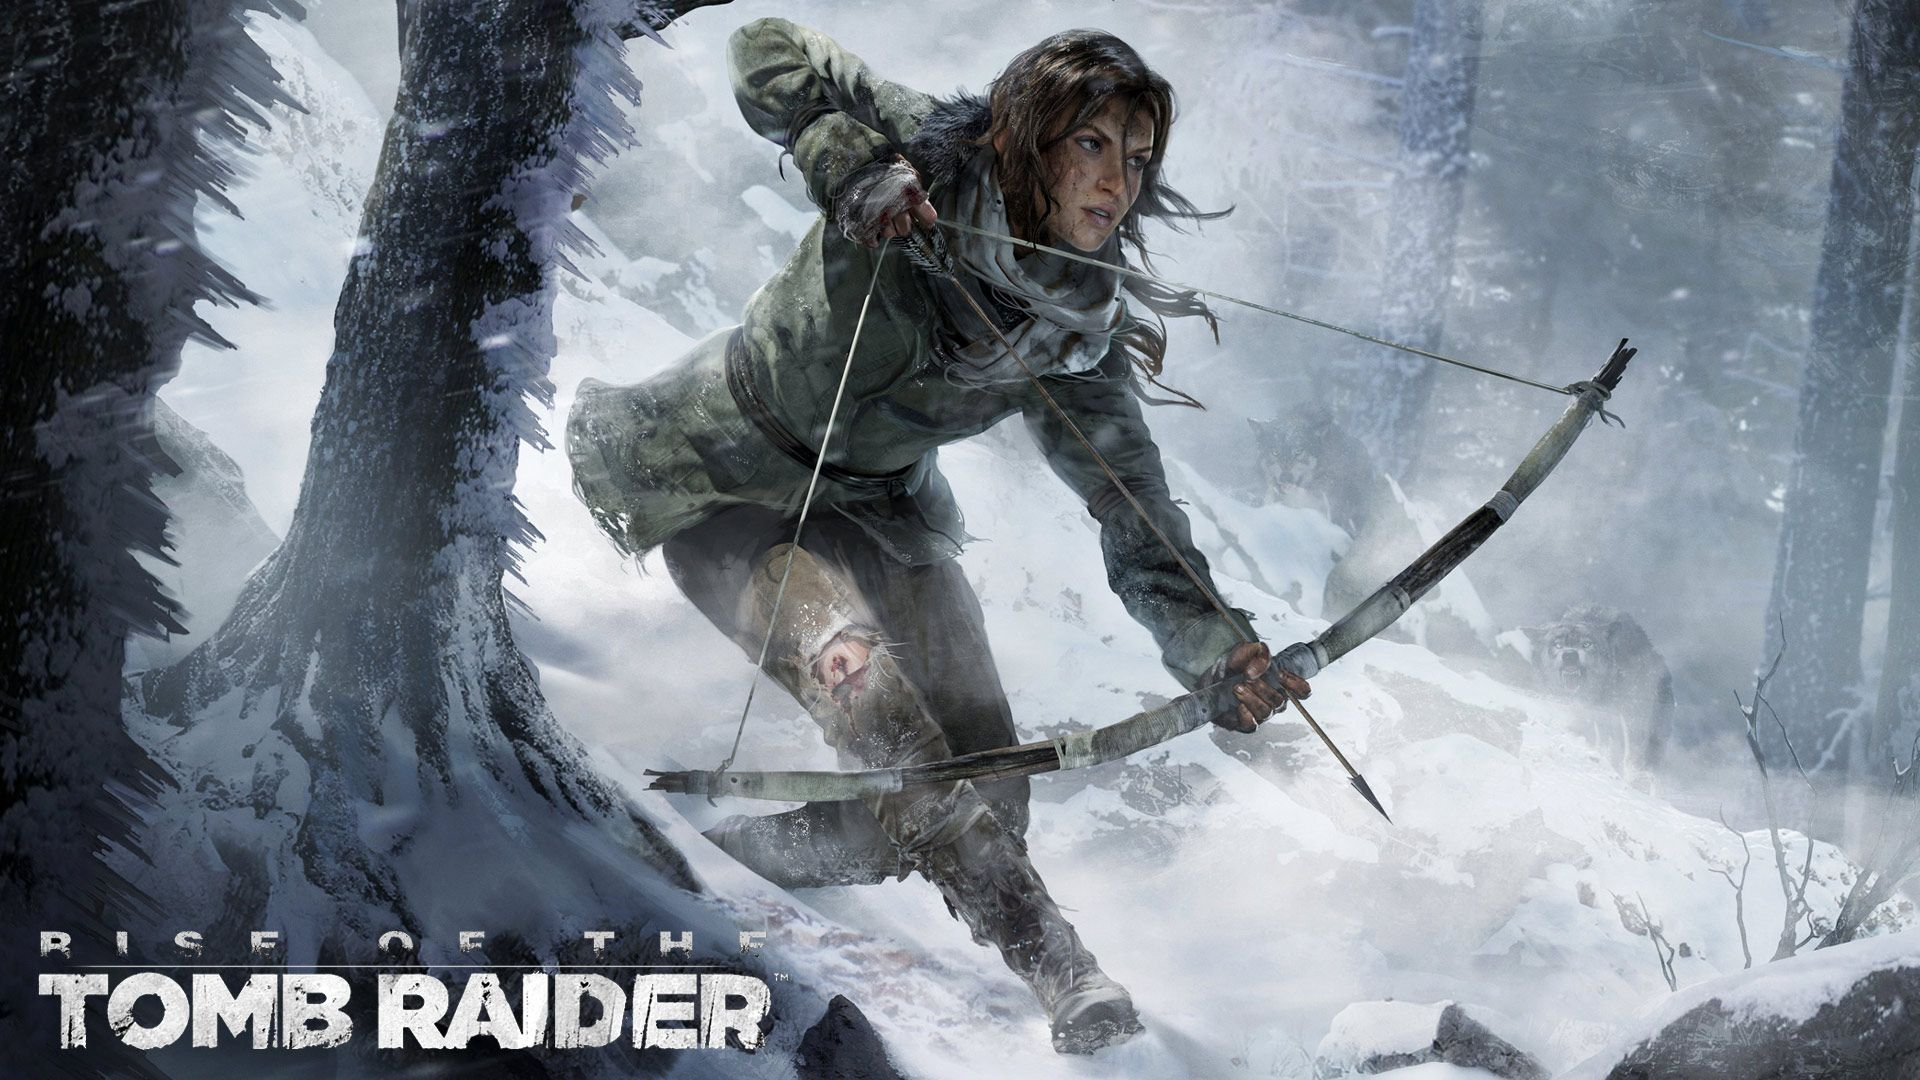 Bad News PlayStation Gamers If You Were Hoping To Play Rise Of The Tomb Raider Then Youll Need Pick Up An Xbox One Too Since Its Confirmed Today